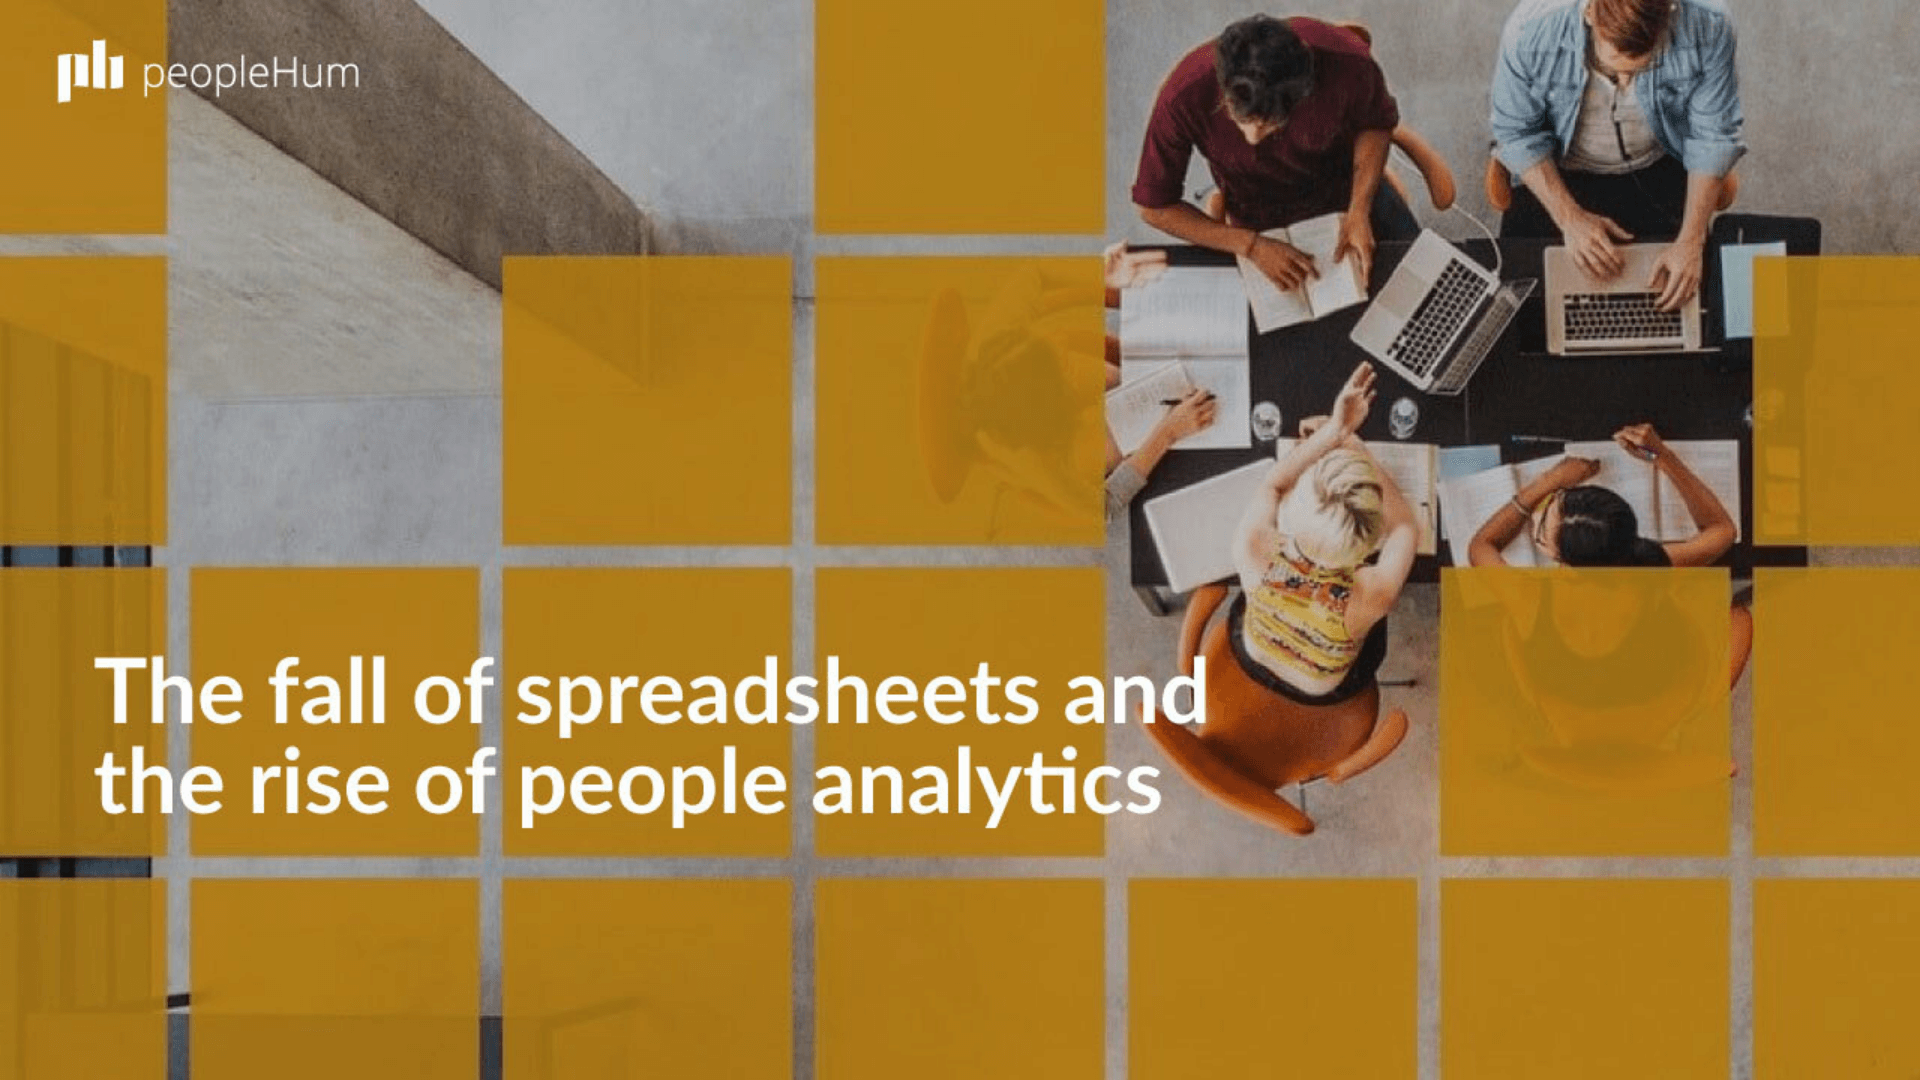 The fall of spreadsheets and the rise of people analytics